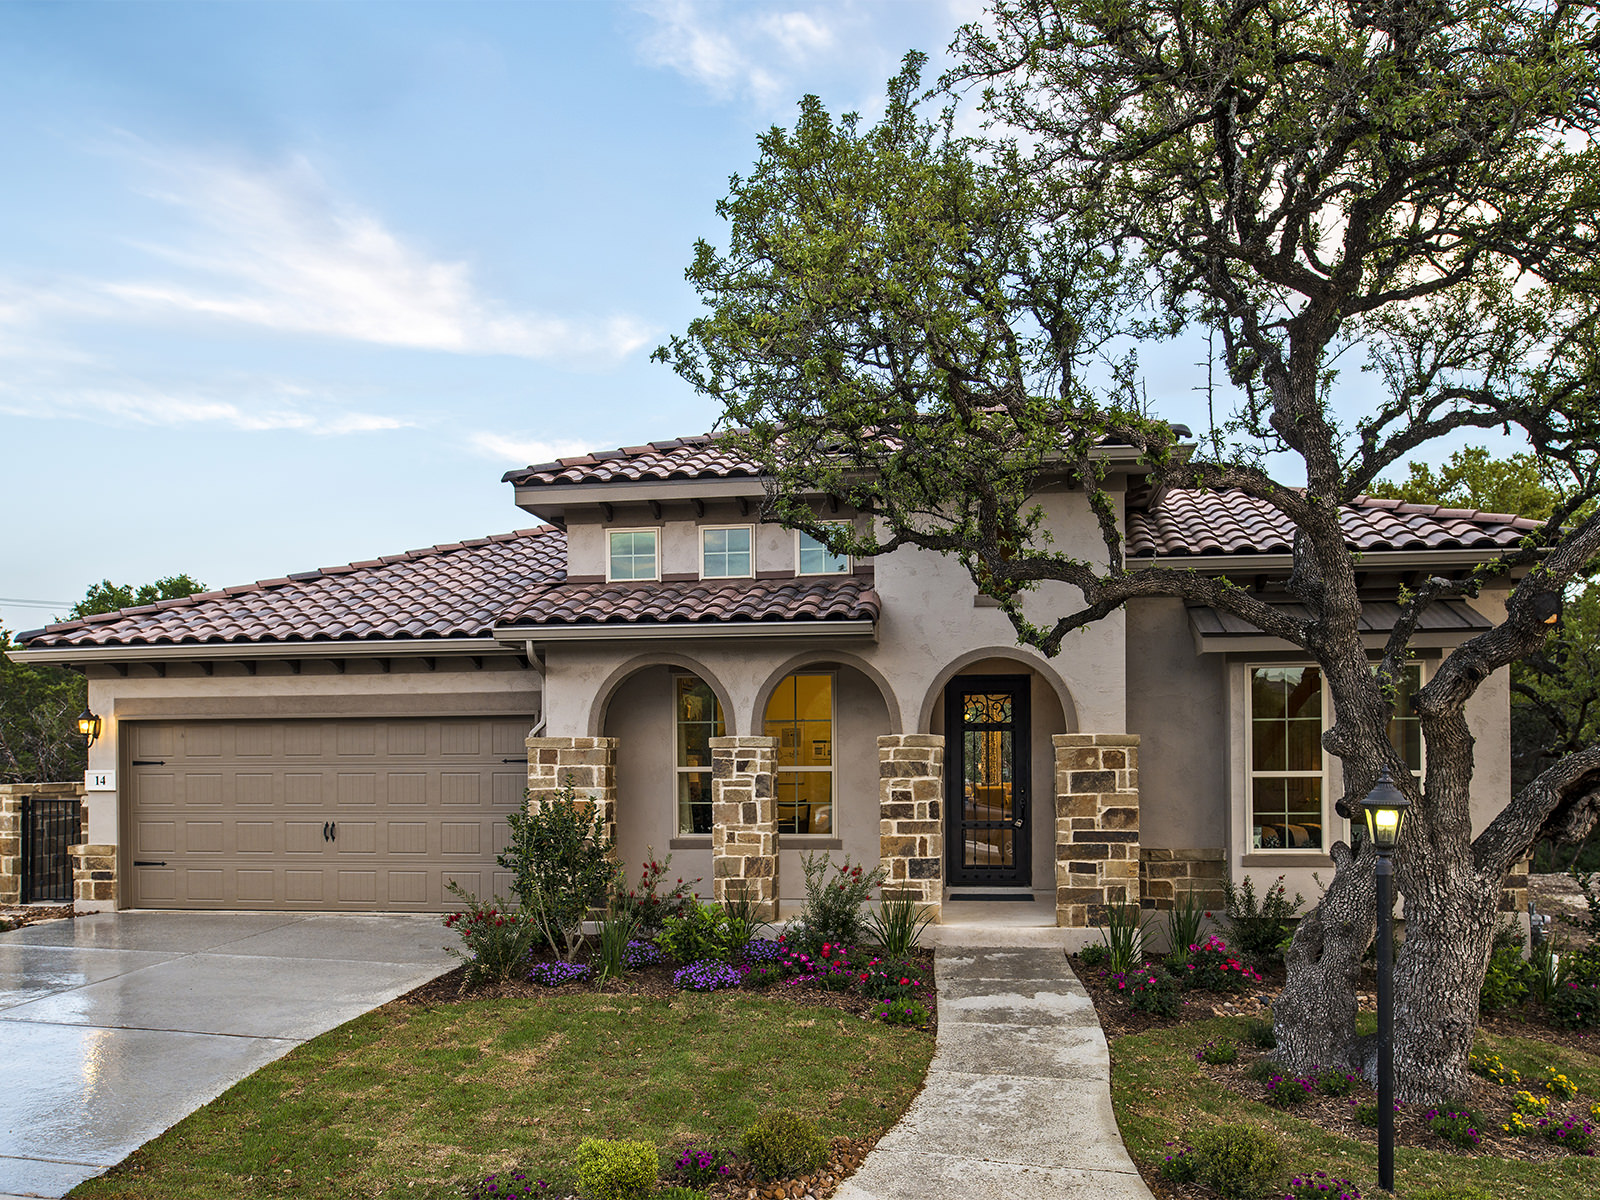 House For Sale In San Antonio Tx House Plan 2017